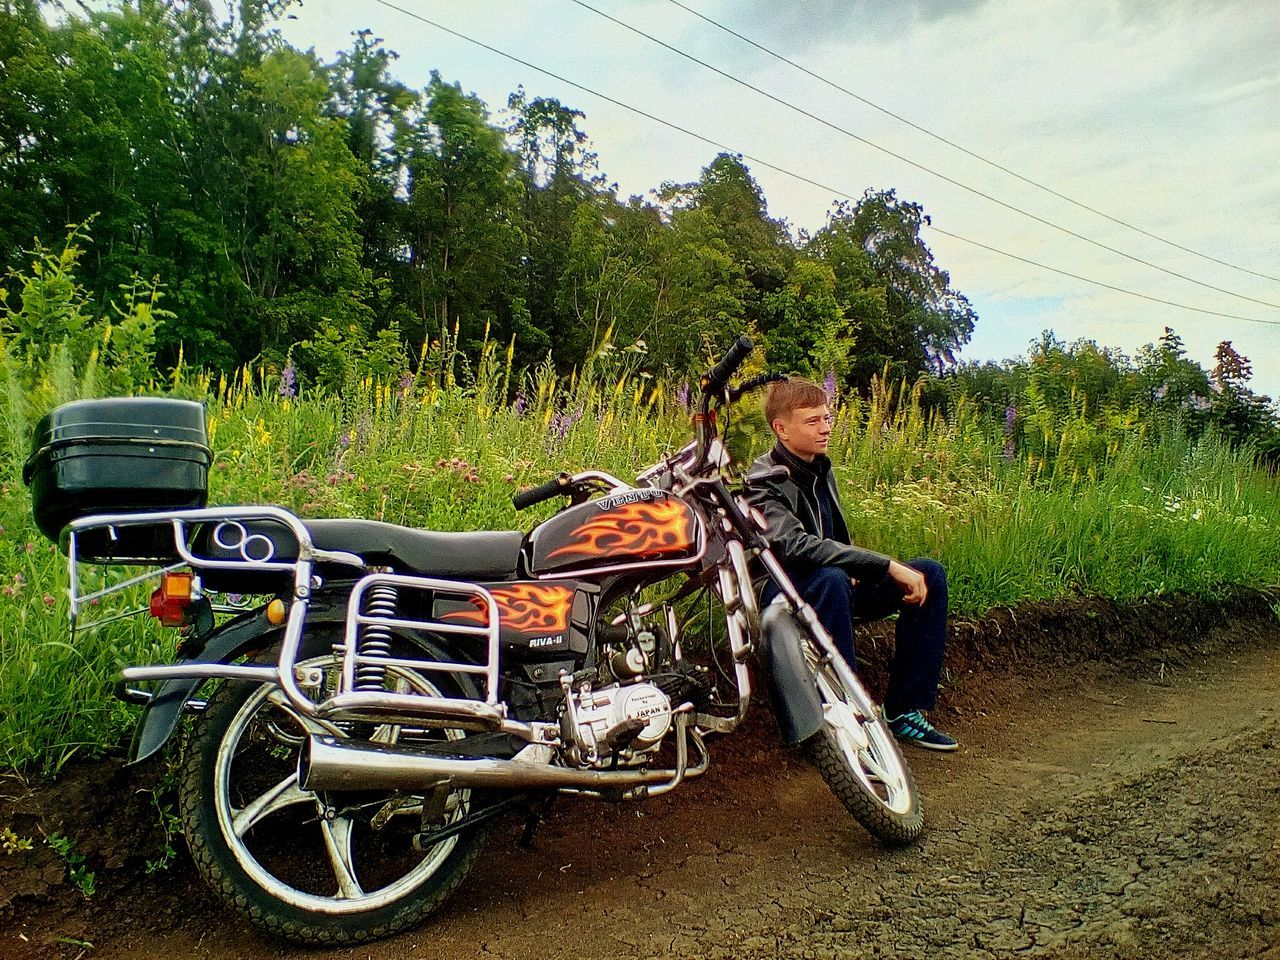 tree, transportation, motorcycle, growth, field, outdoors, day, land vehicle, nature, sky, one person, people